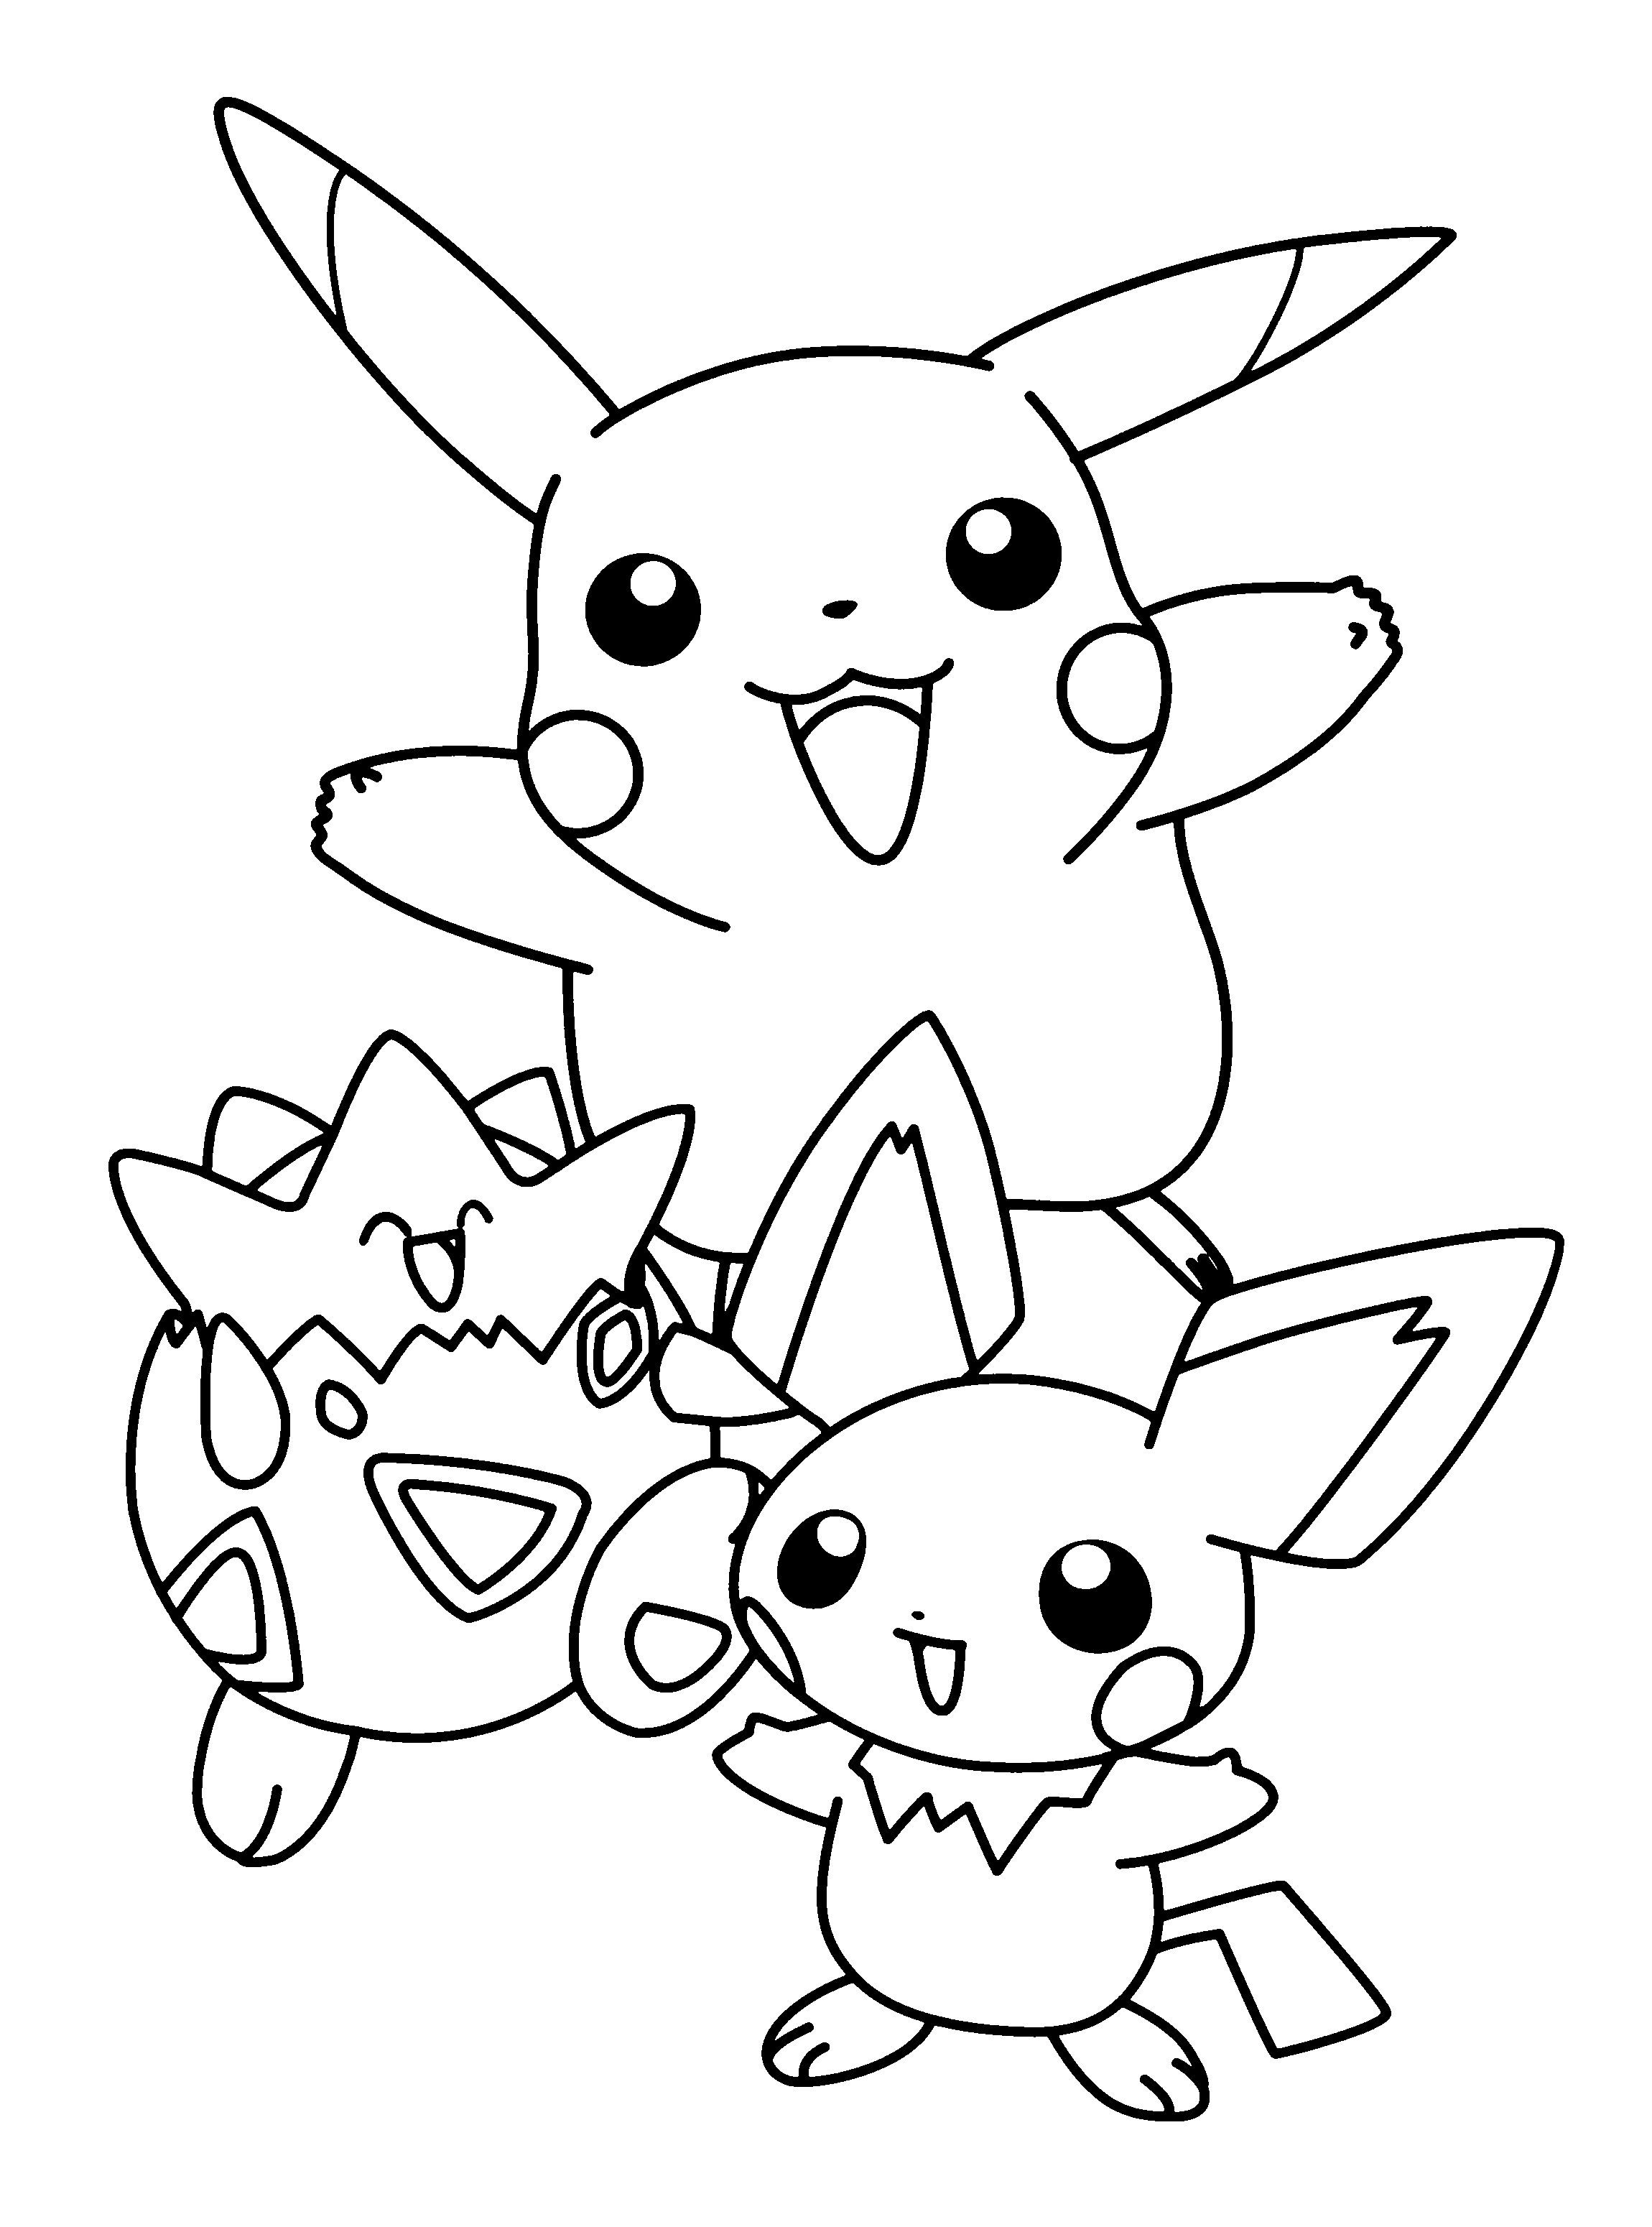 Pokemon Coloring Pages Free Download Pikachu Coloring Page Cartoon Coloring Pages Pokemon Coloring Sheets